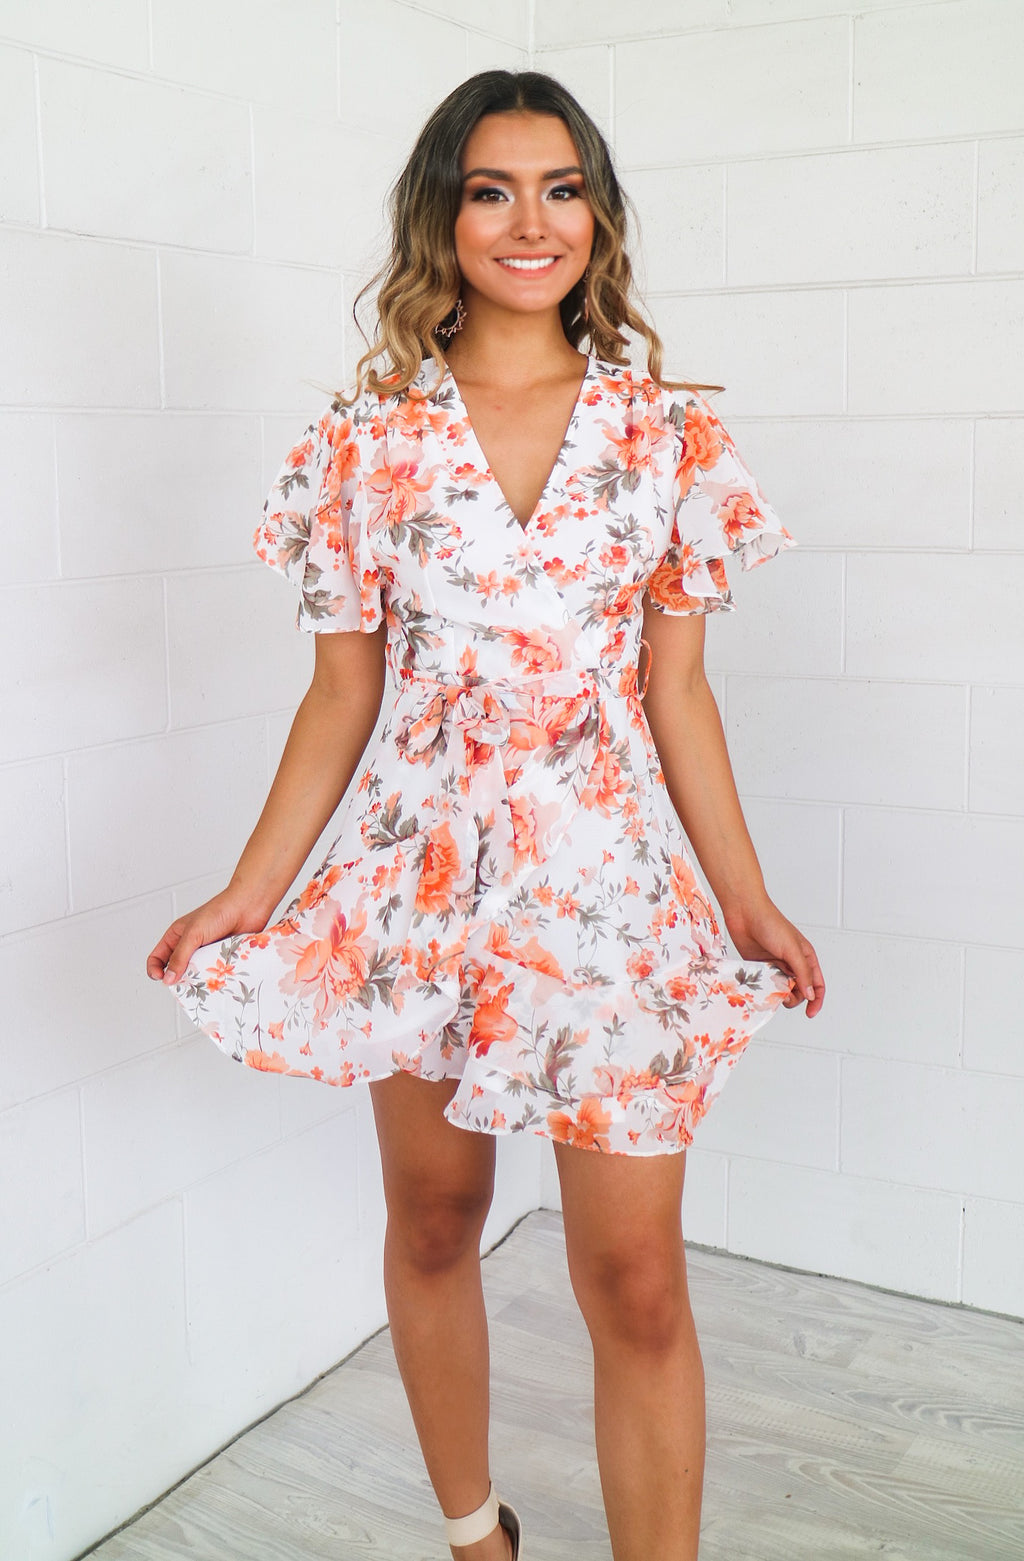 Floral Butterfly Dress - Tangerine Garden - Runway Goddess